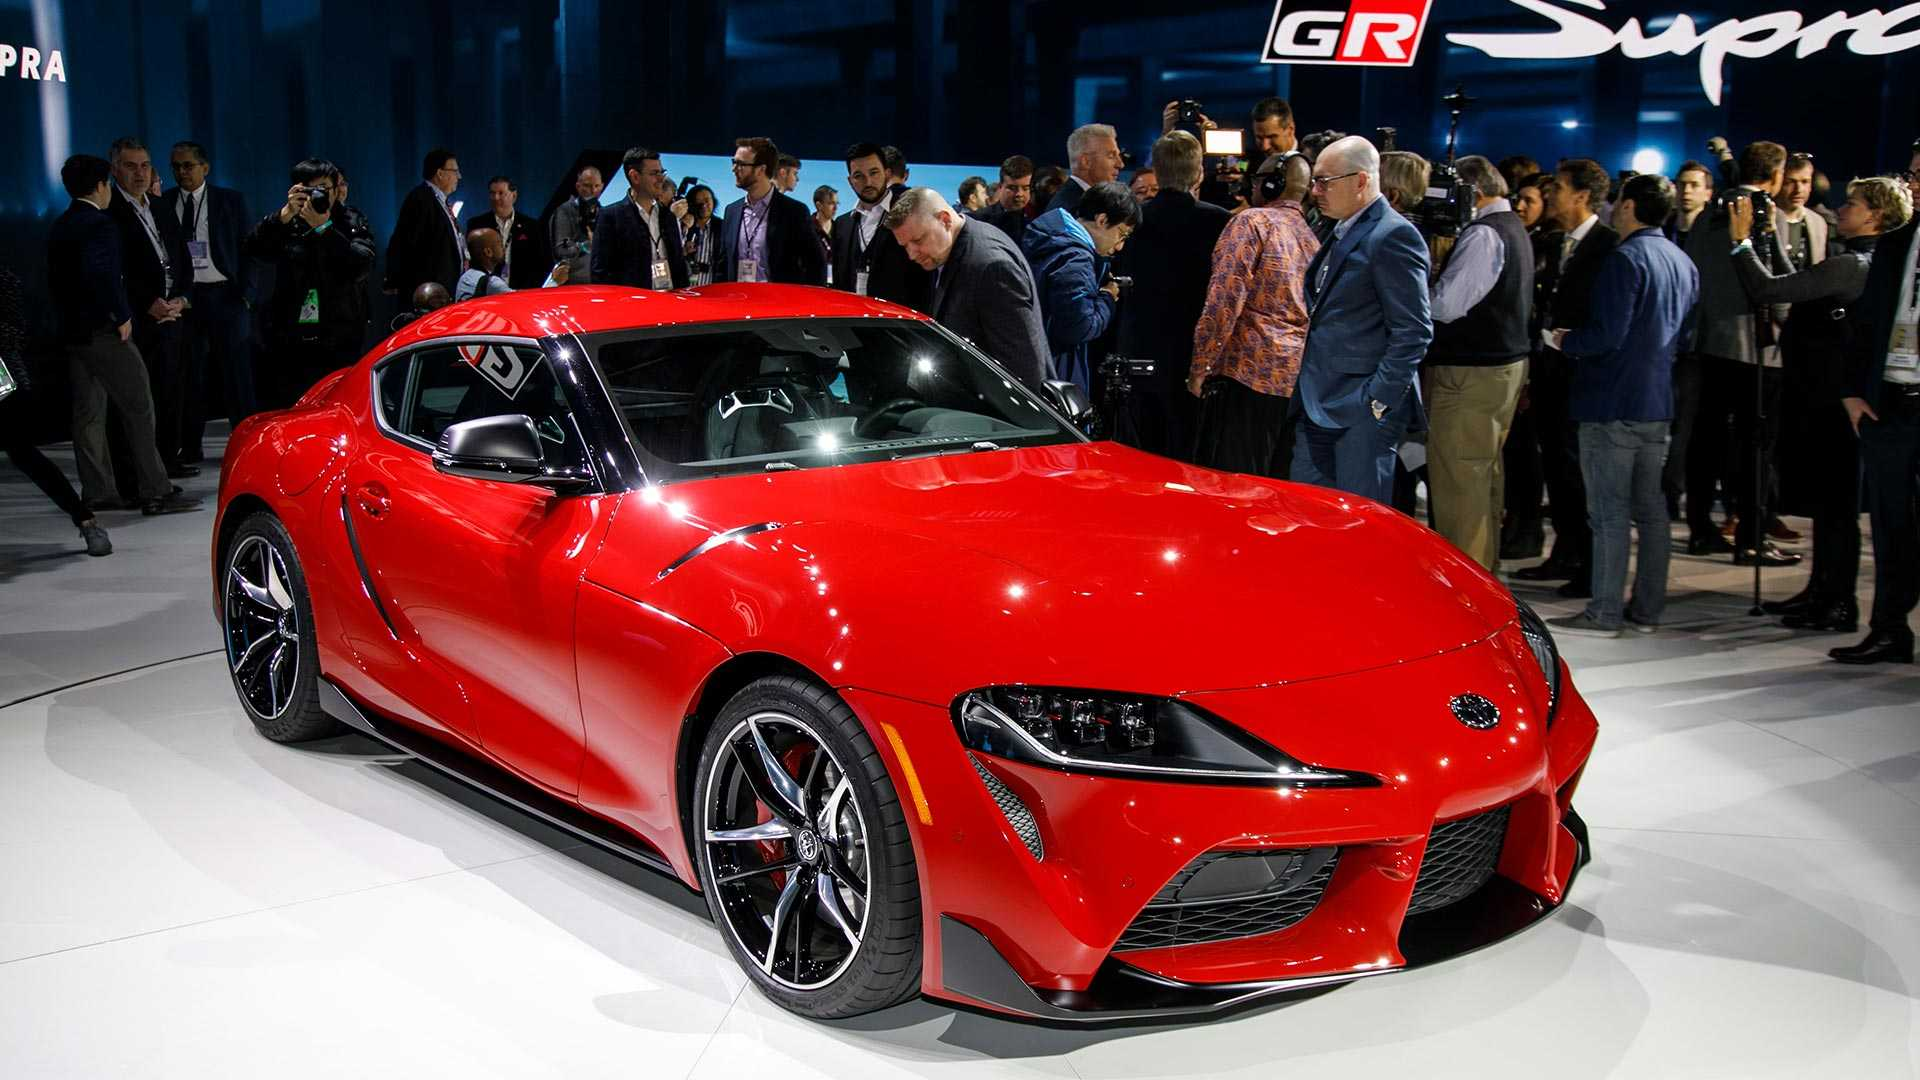 93 New Who Bought The 2020 Toyota Supra At Barrett Jackson Release Date by Who Bought The 2020 Toyota Supra At Barrett Jackson